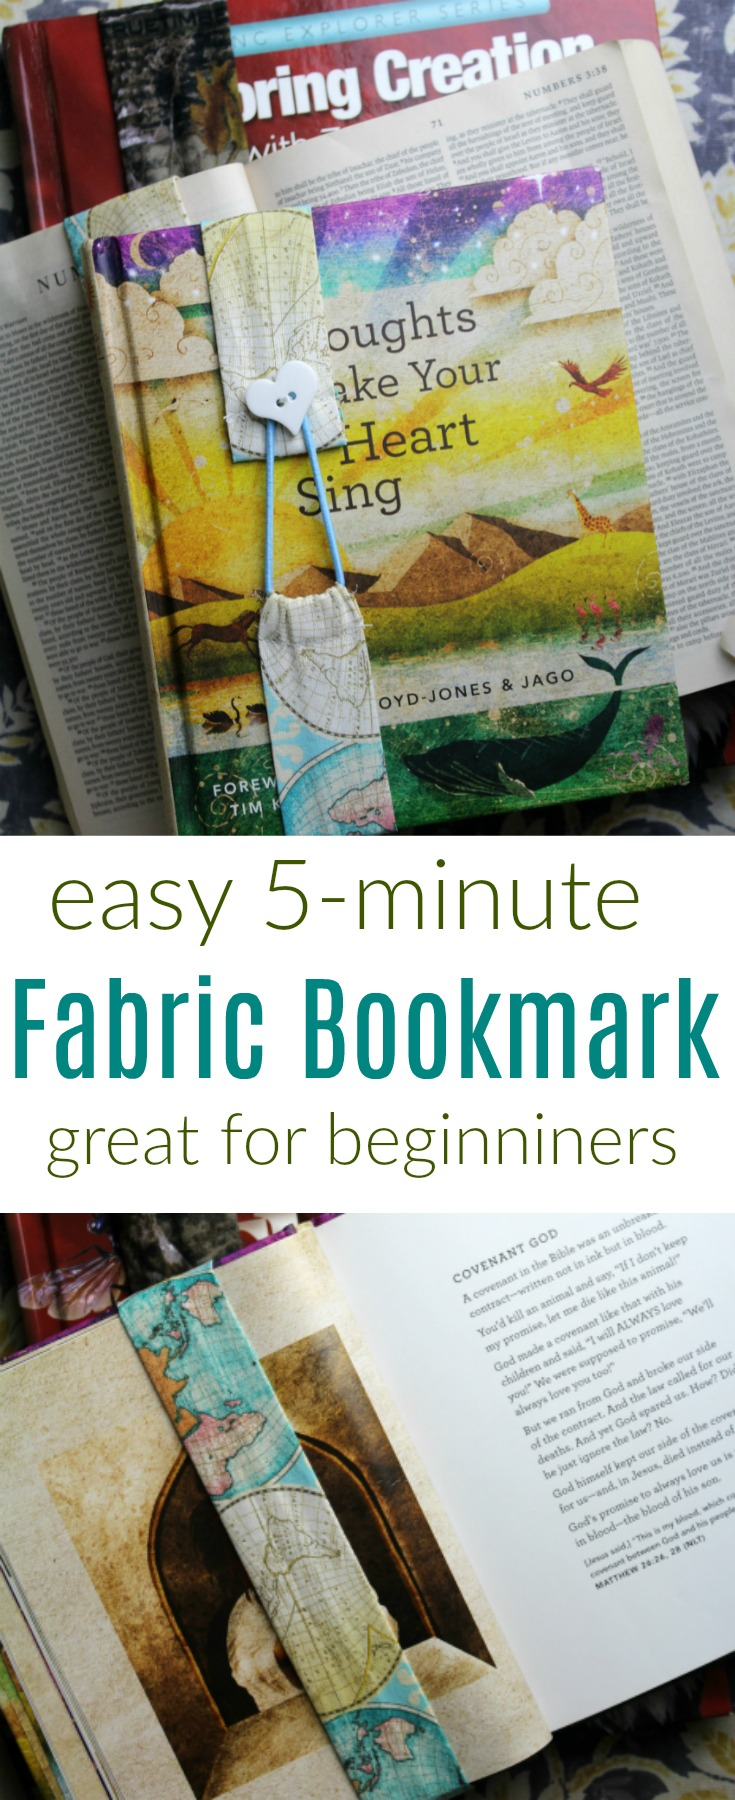 Learn how to sew a fabric bookmark - a super easy project for beginners that takes just five minutes!  It's a great way to use up fabric scraps!  #fabric #sewing #scraps #DIY #kids #sew #bookmark